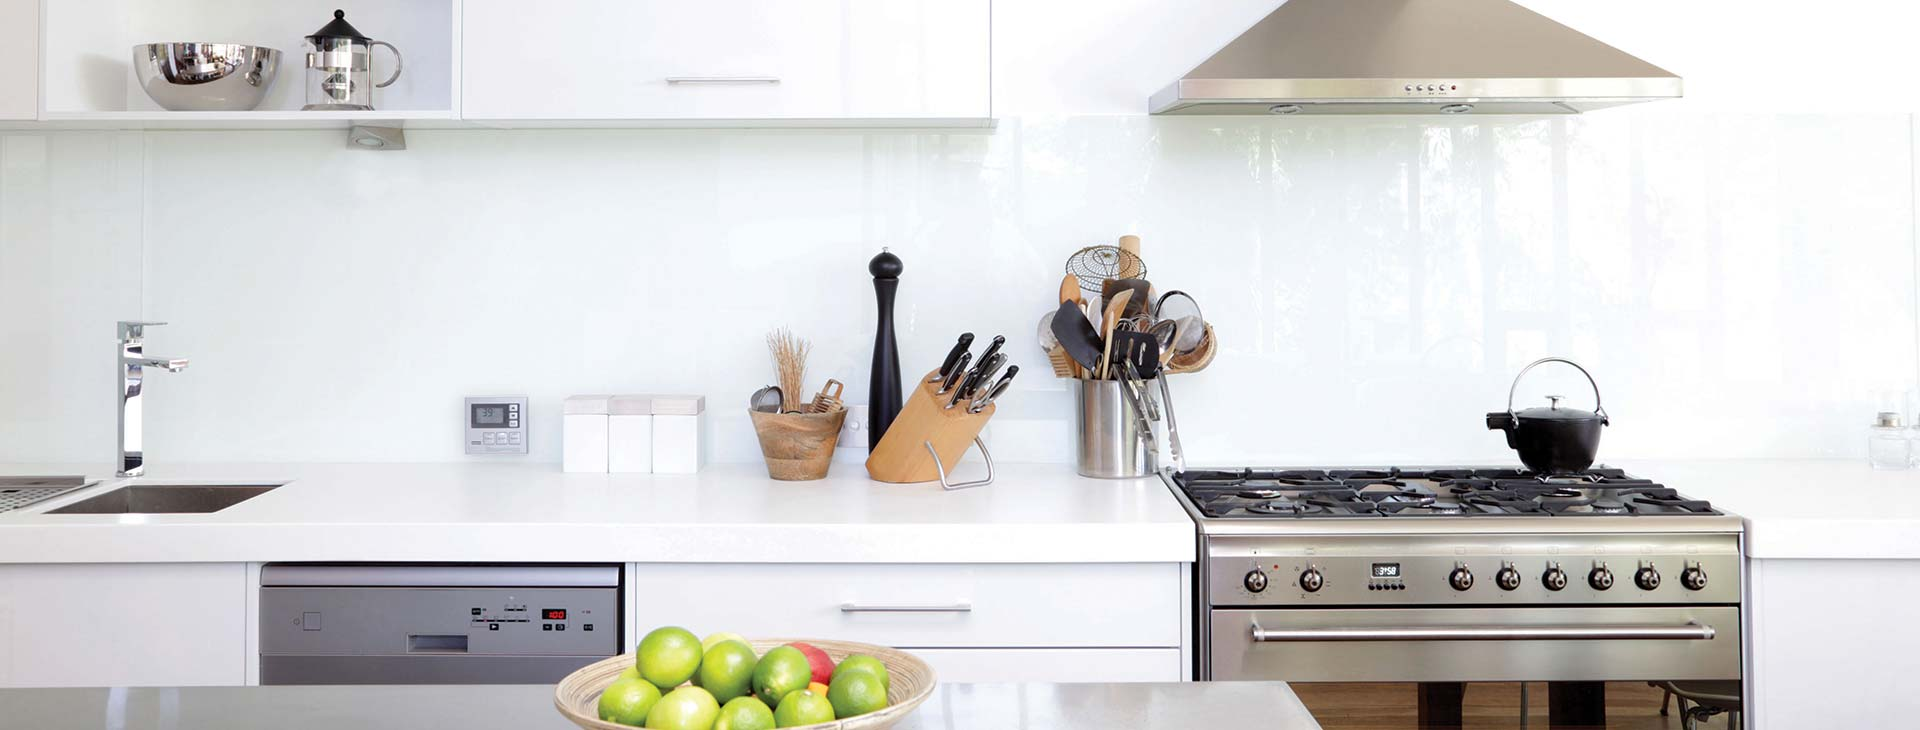 Beautiful white kitchen with stainless steel appliances and accessories